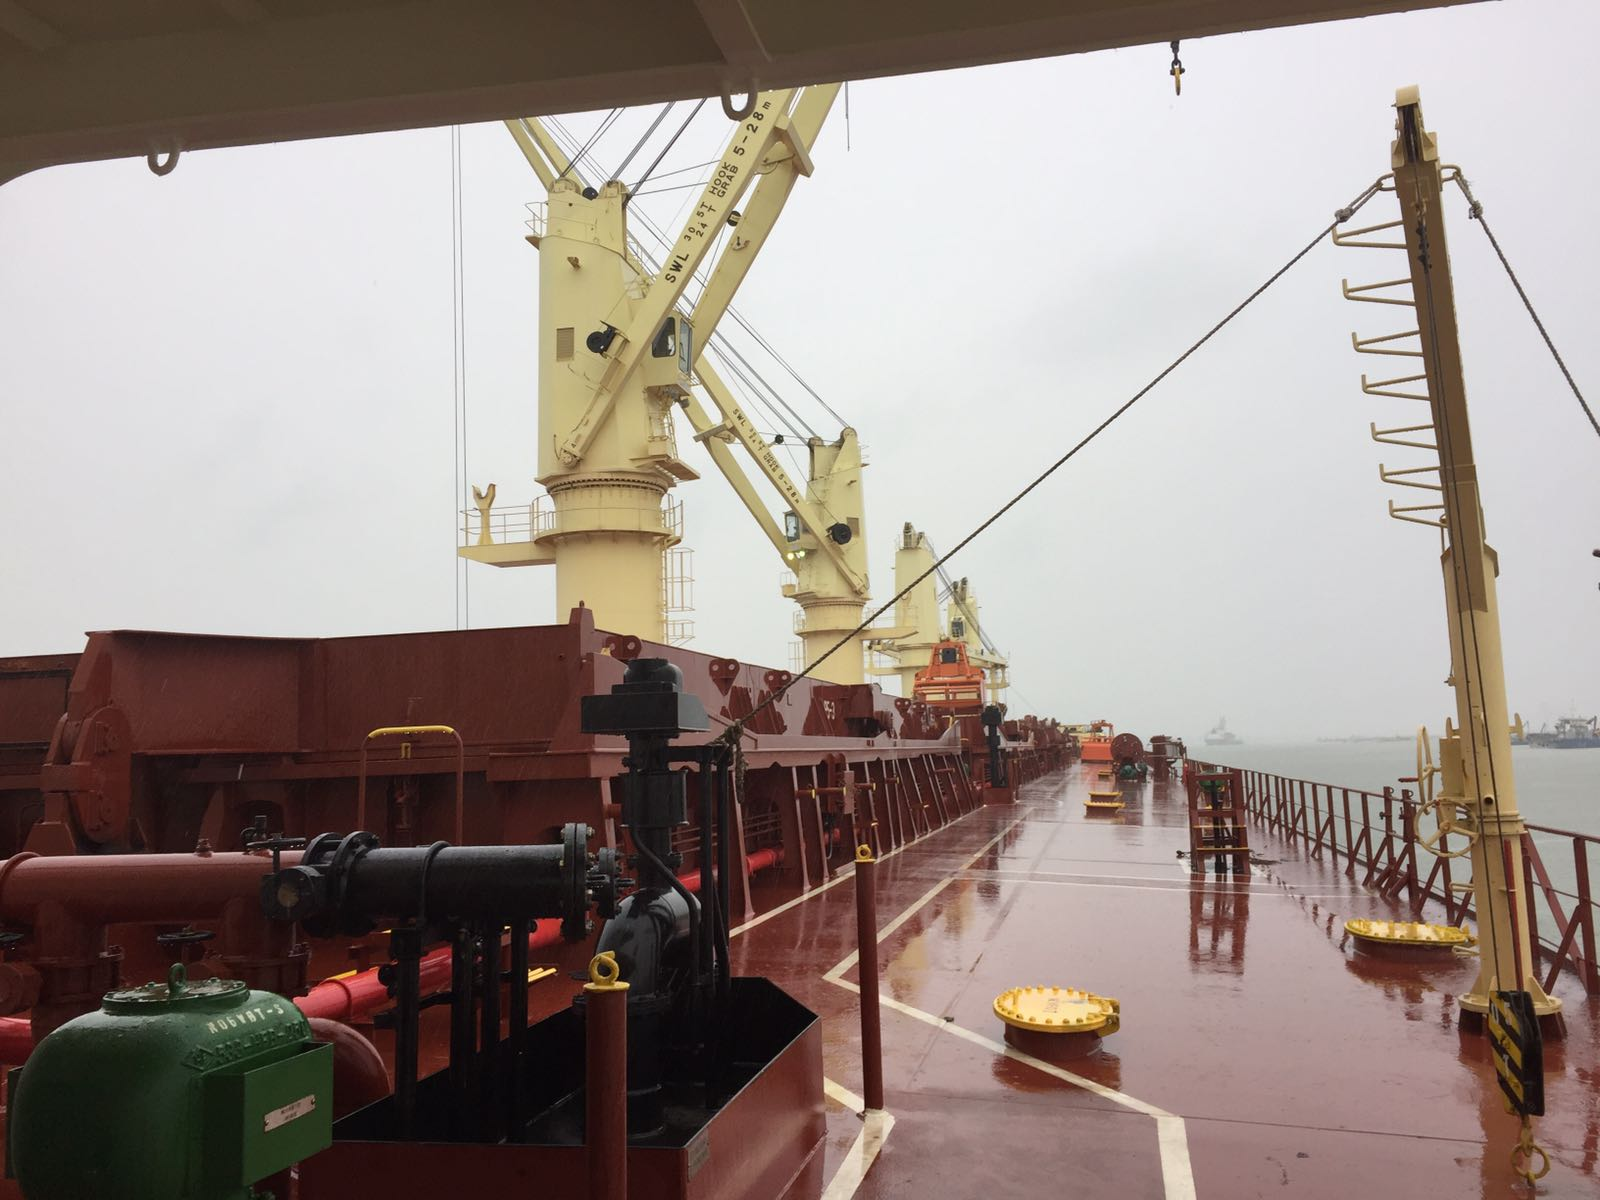 A typical view from the deck of a Bulk Carrier